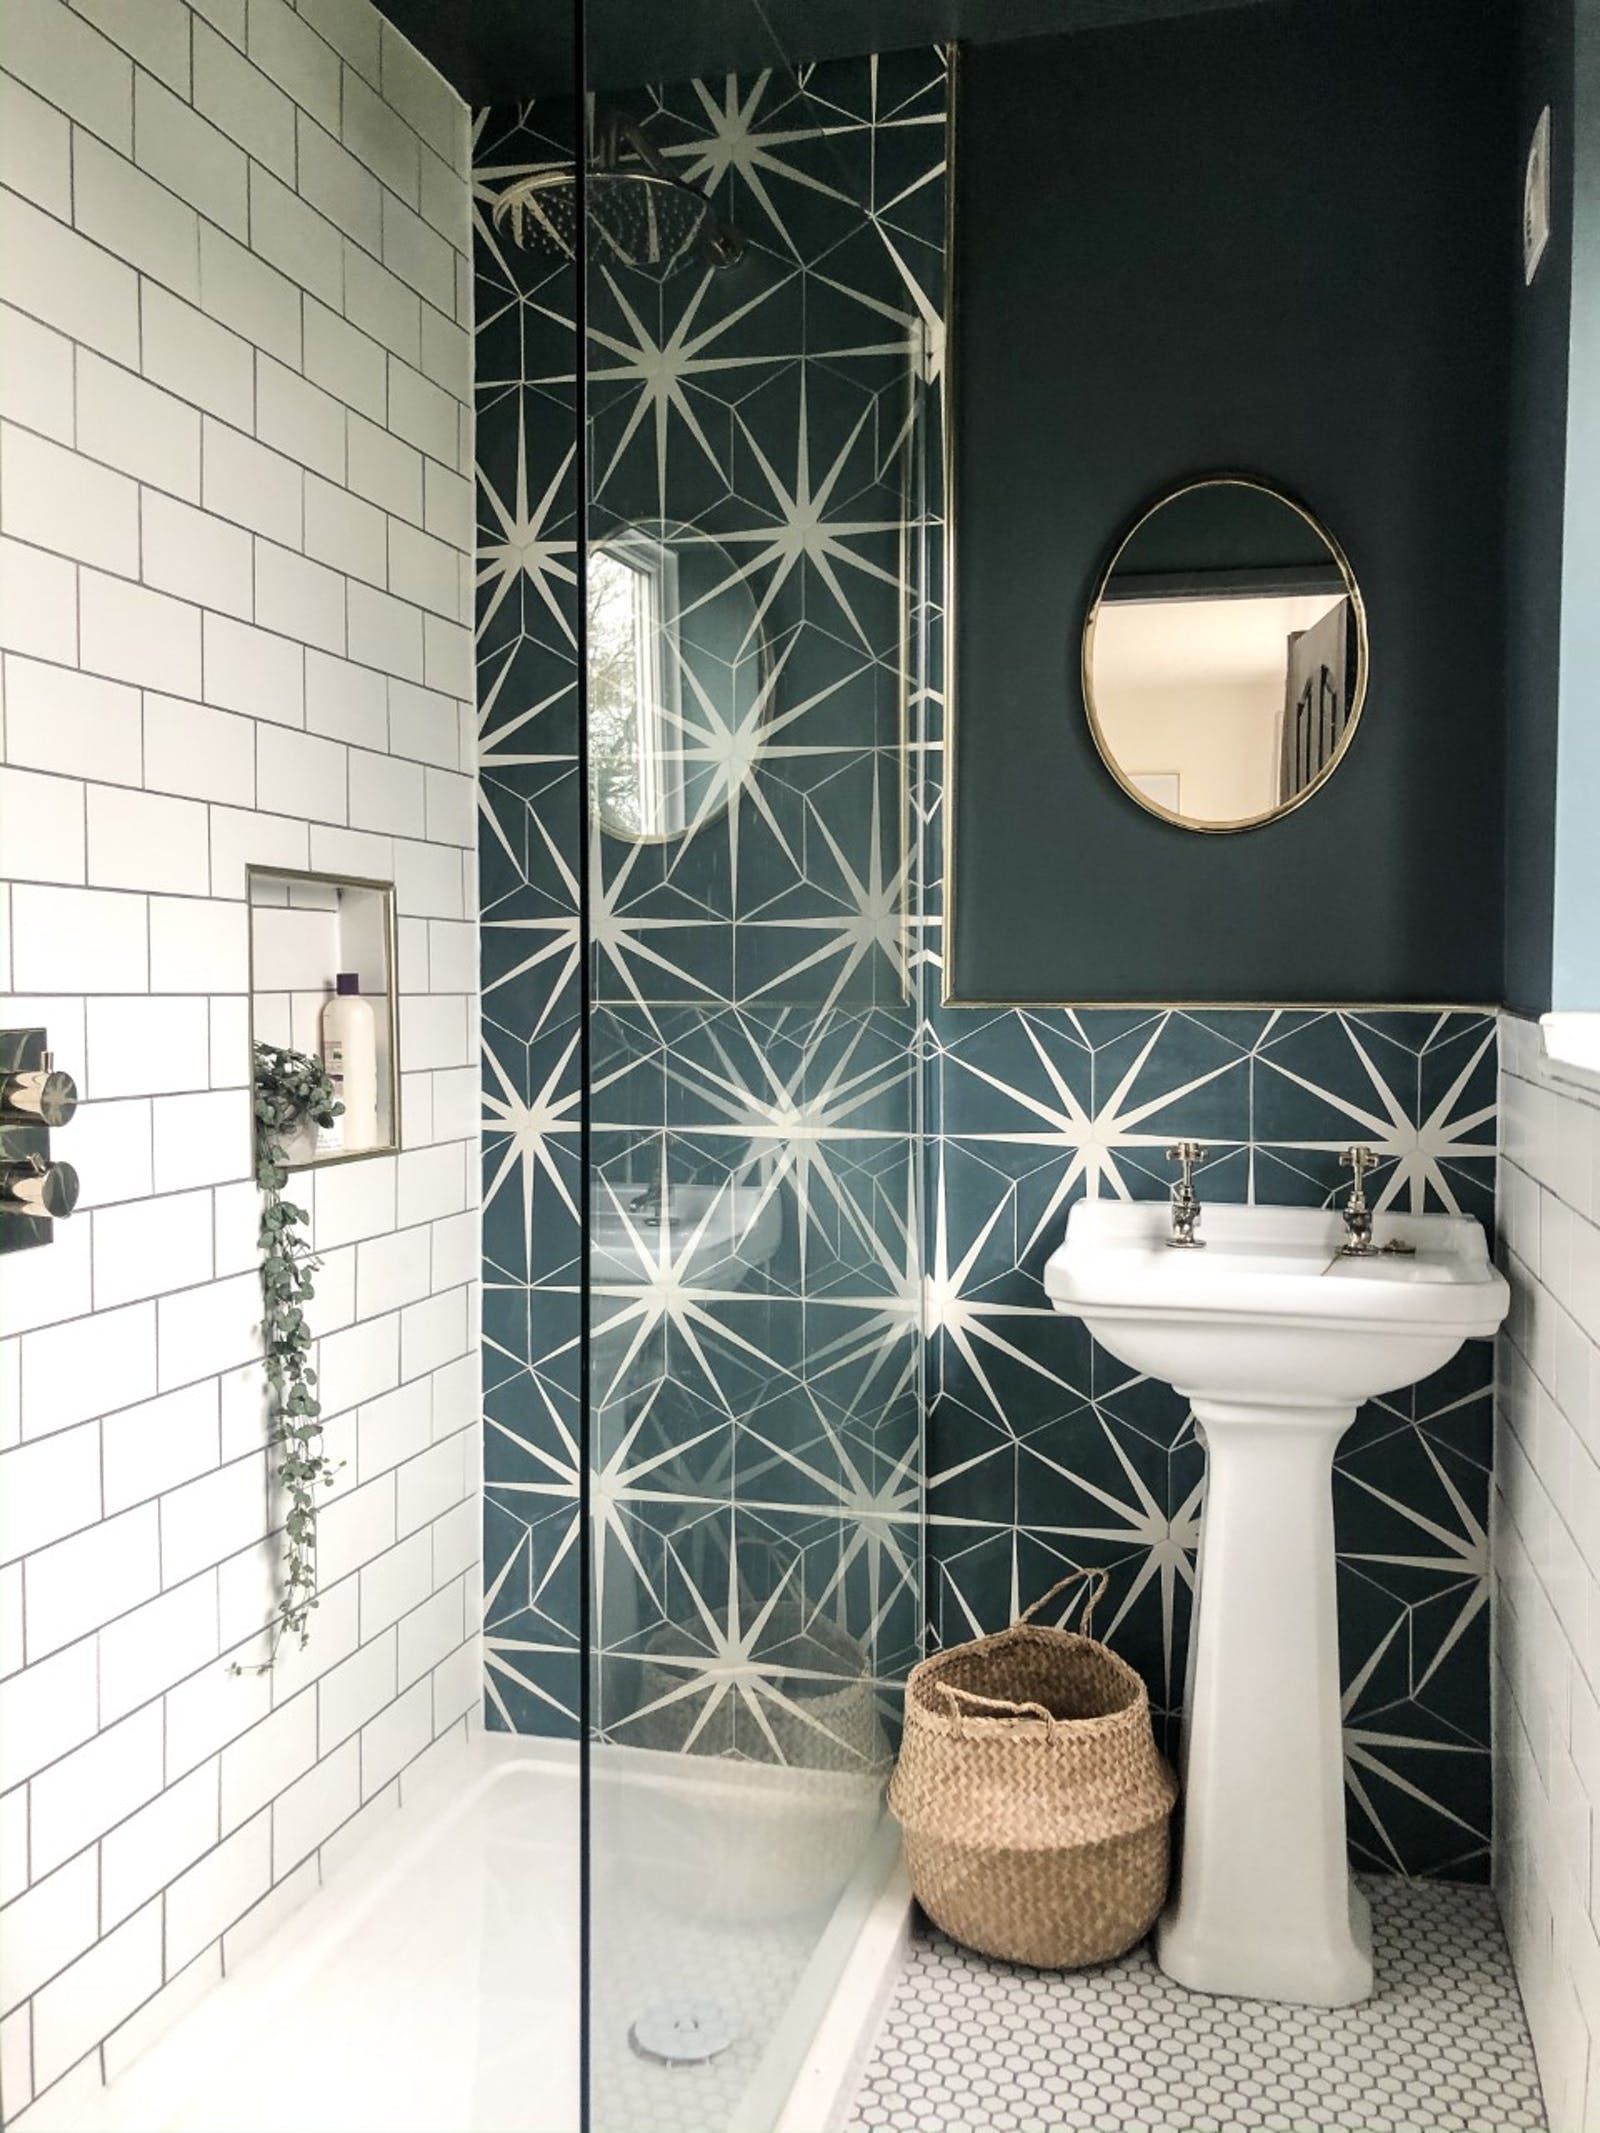 Ensuite painted in teal colour with pattern tiles